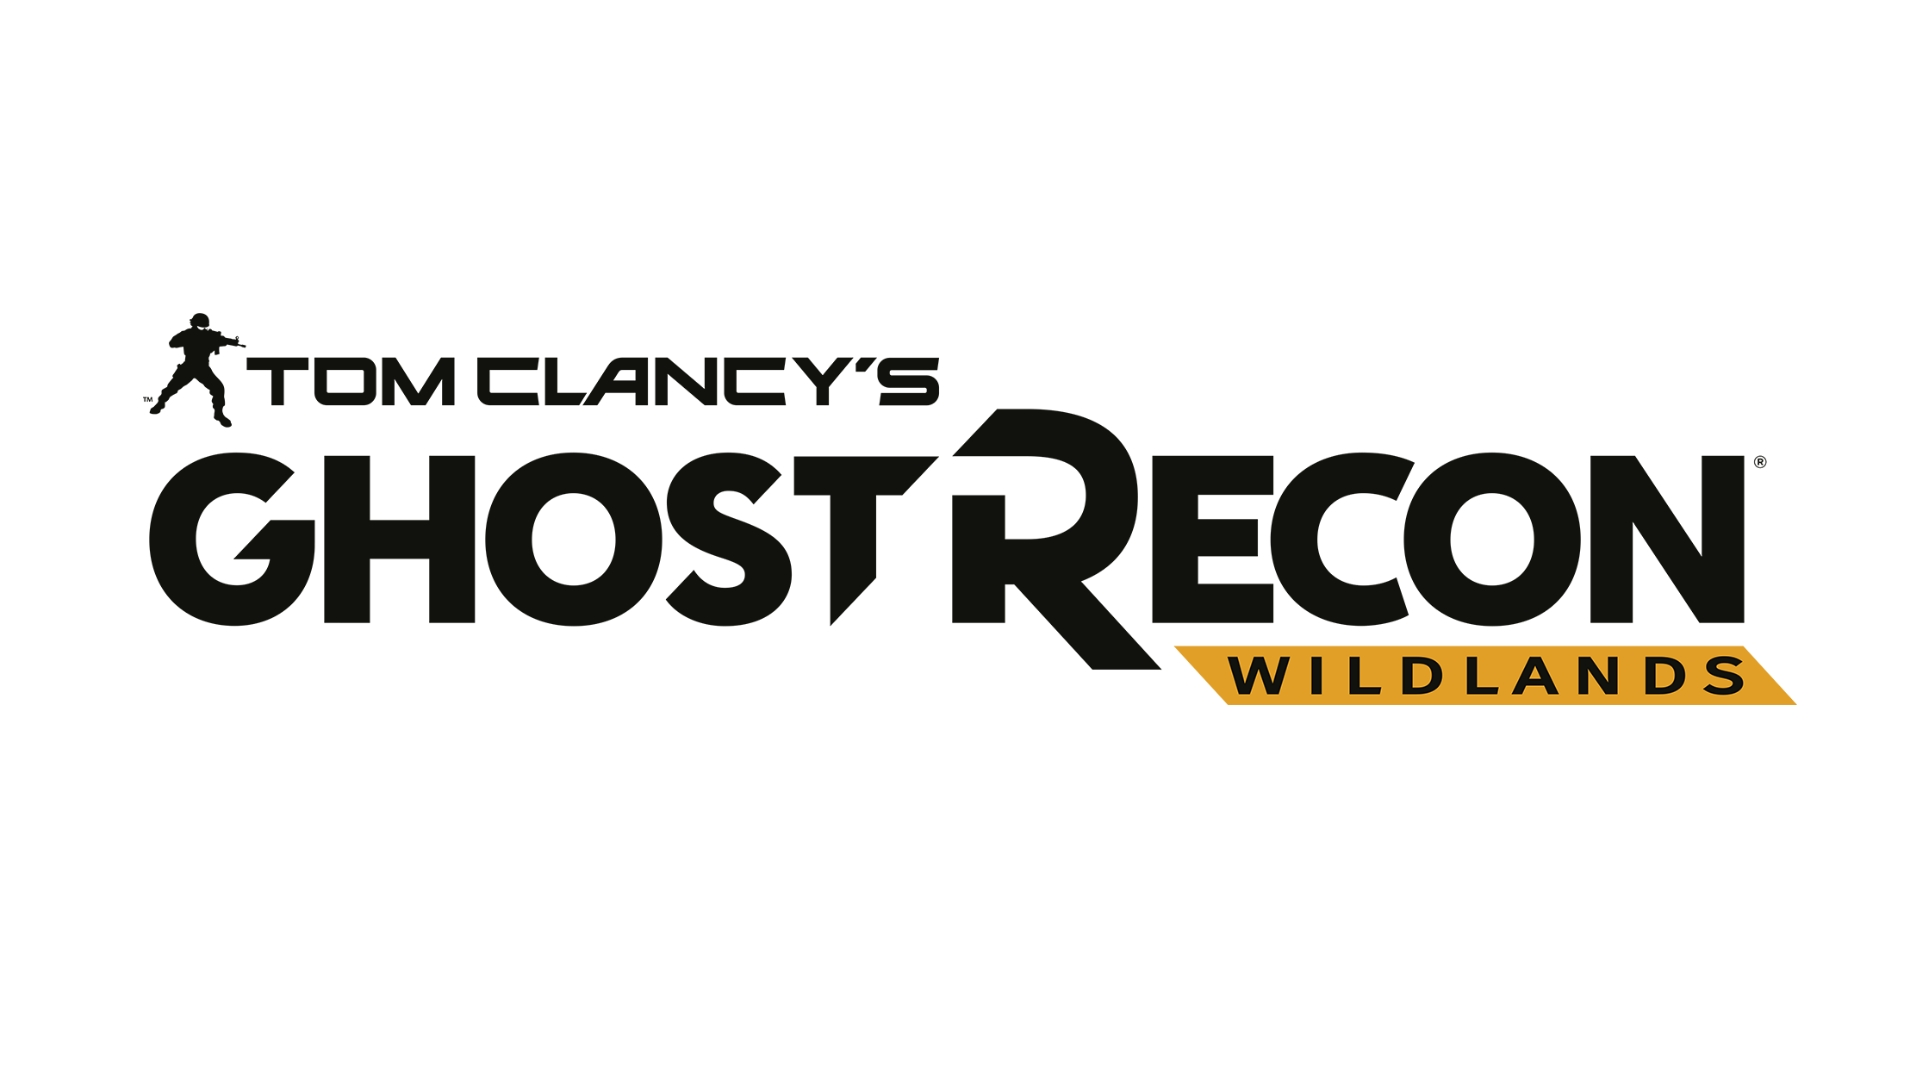 Tom Clancy's Ghost Recon: Wildlands XBox One Review